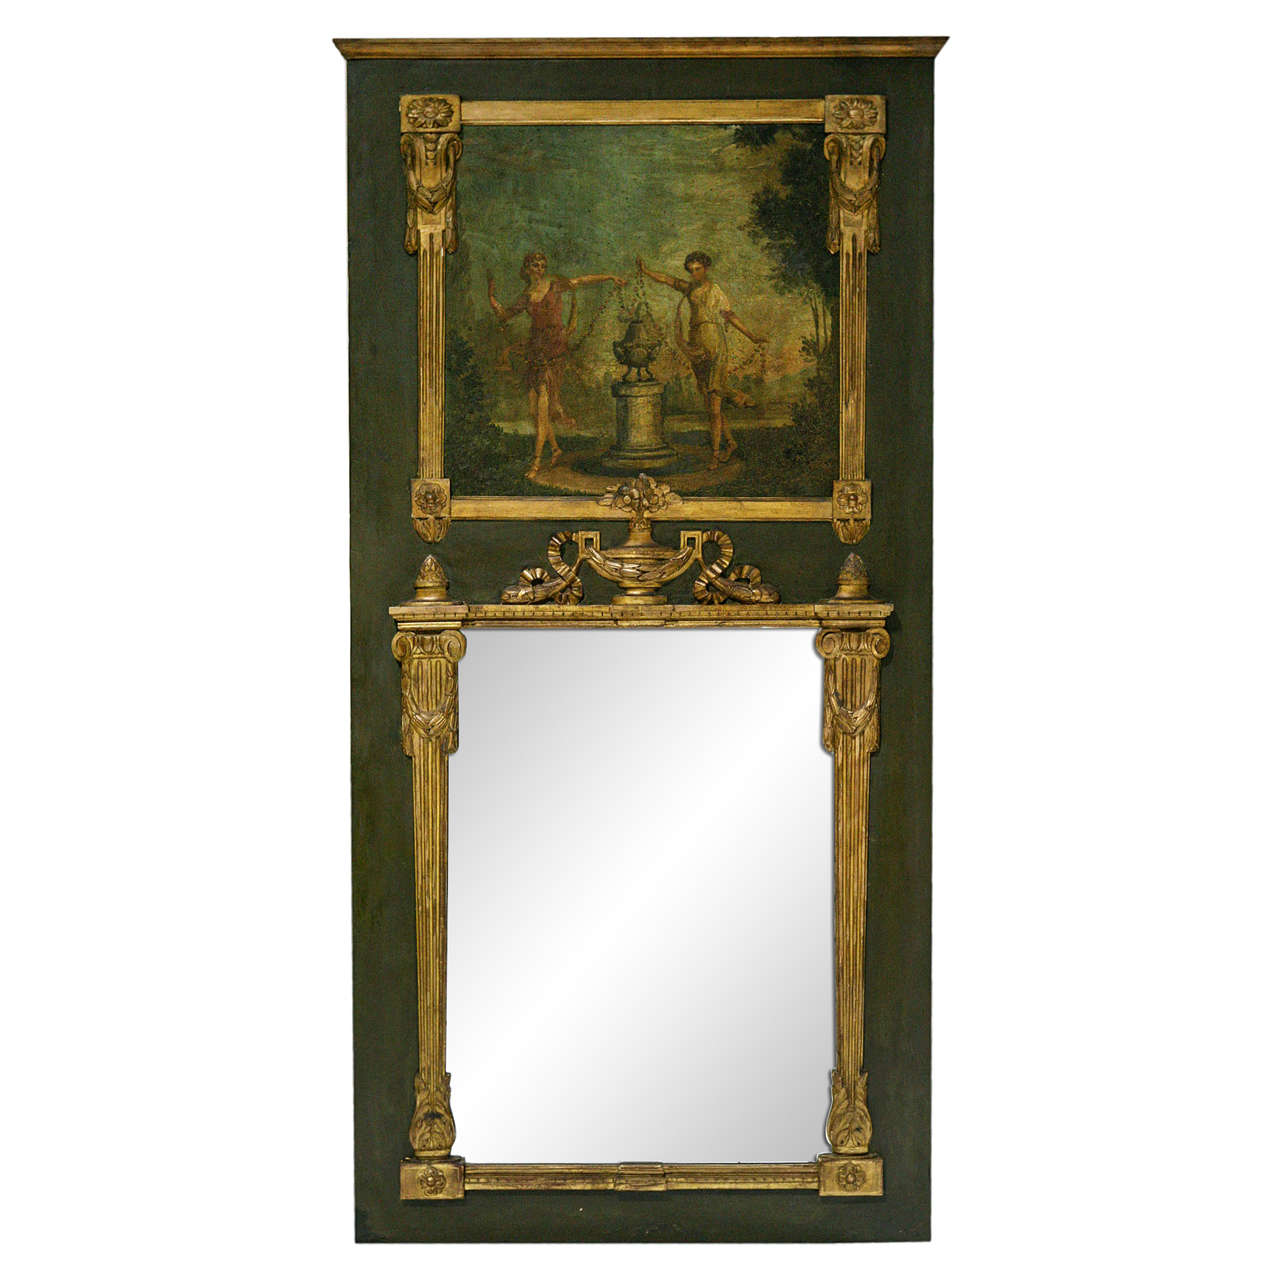 19th century french trumeau mirror at 1stdibs